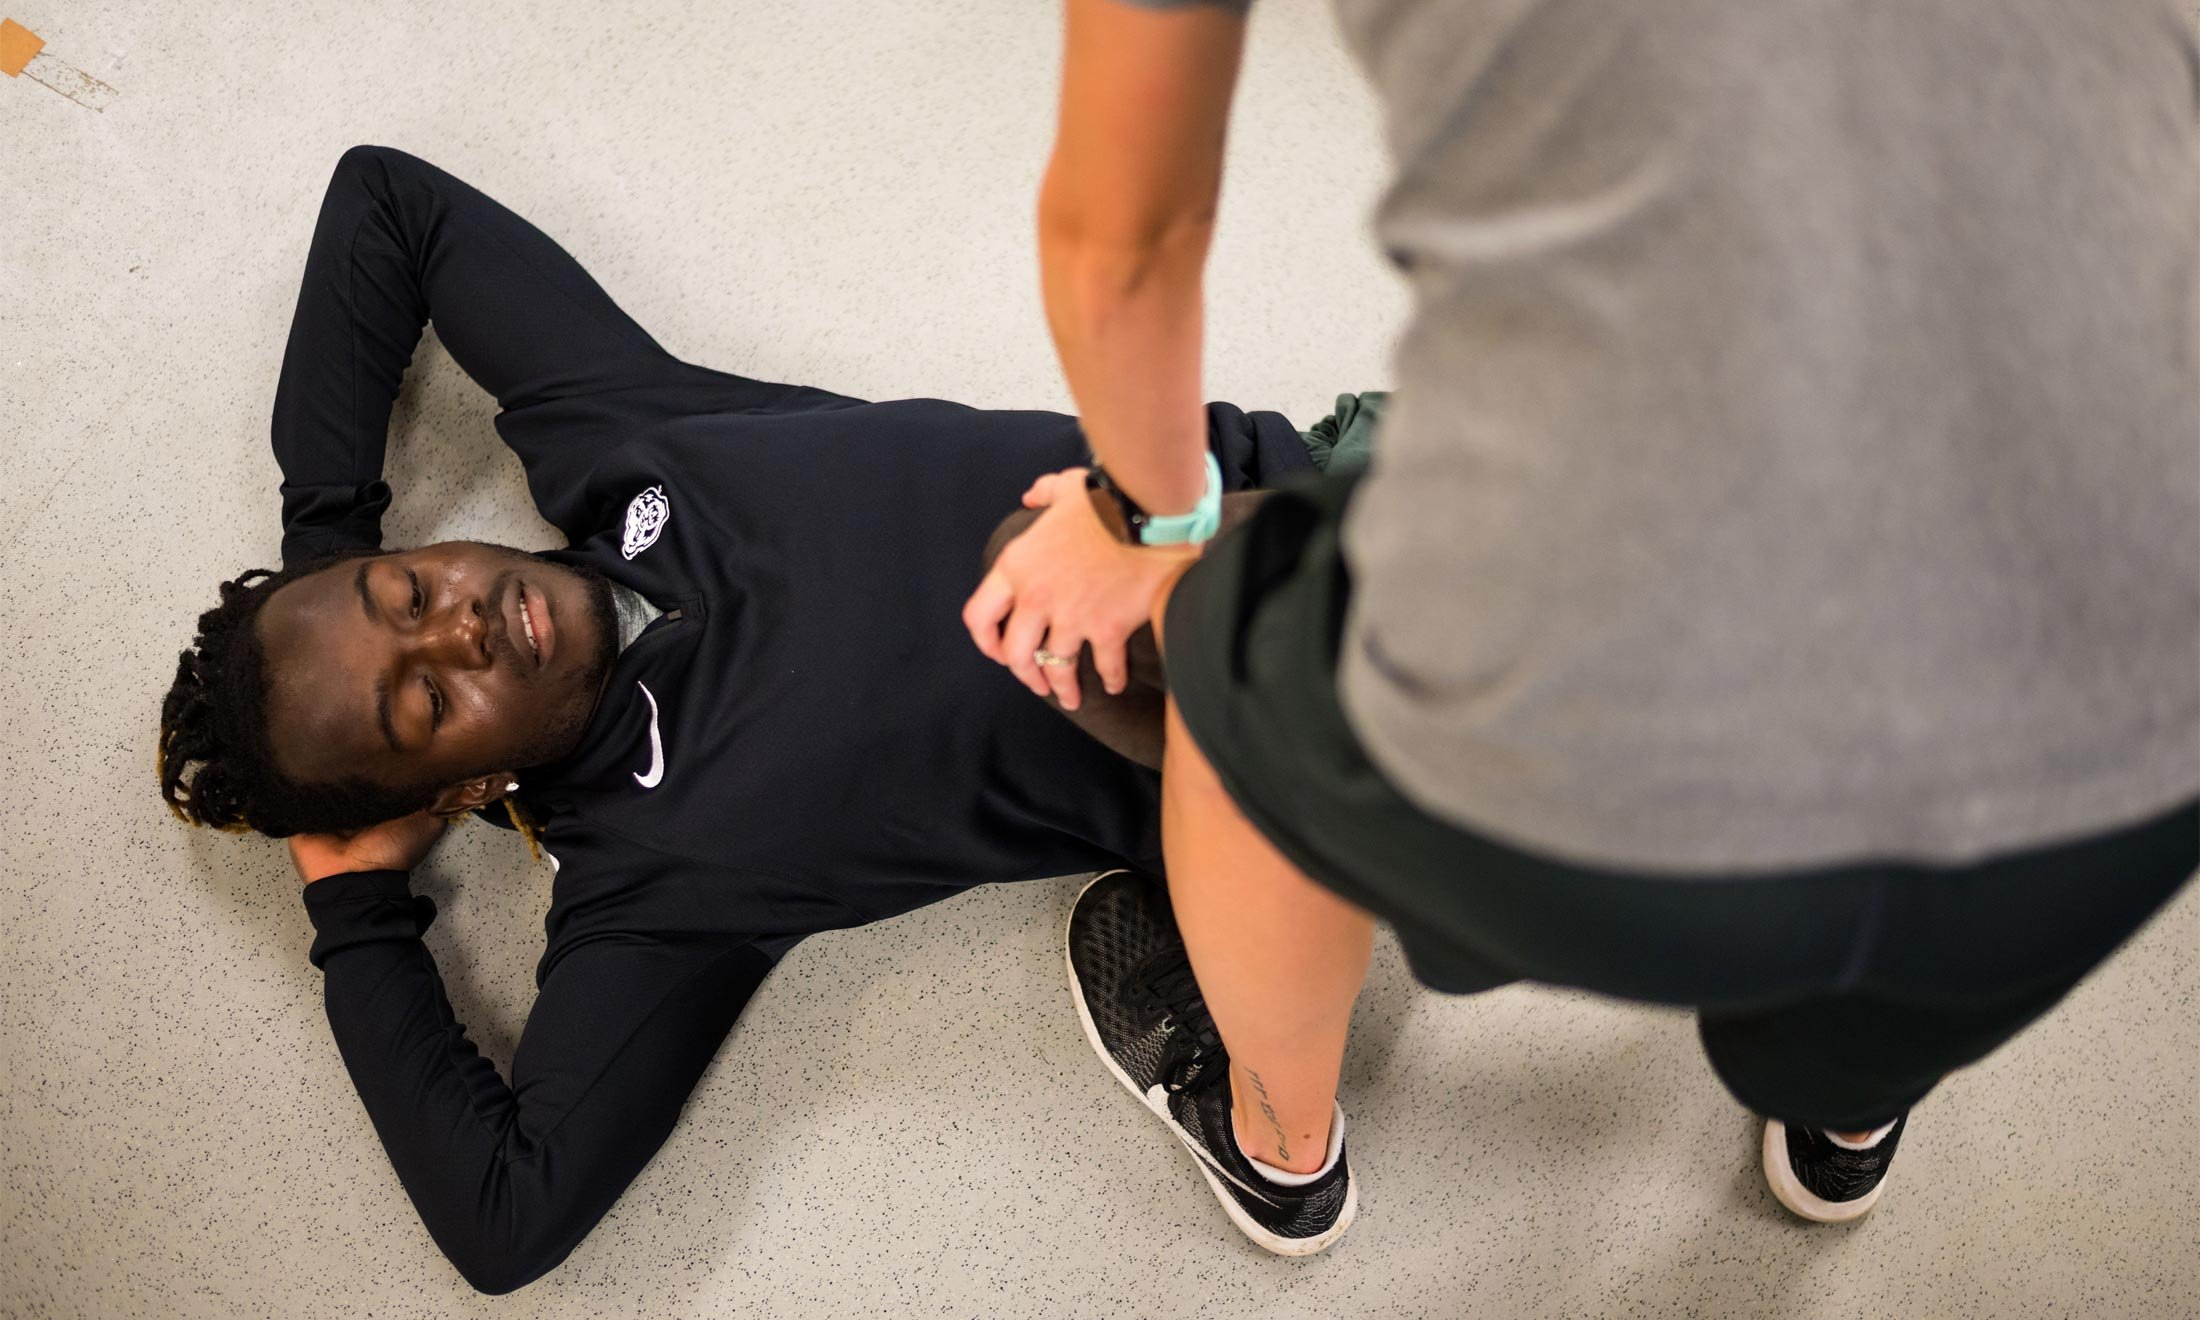 Oakland University soccer player Wilfred Williams lays on a white floor while a trainer helps stretch his legs